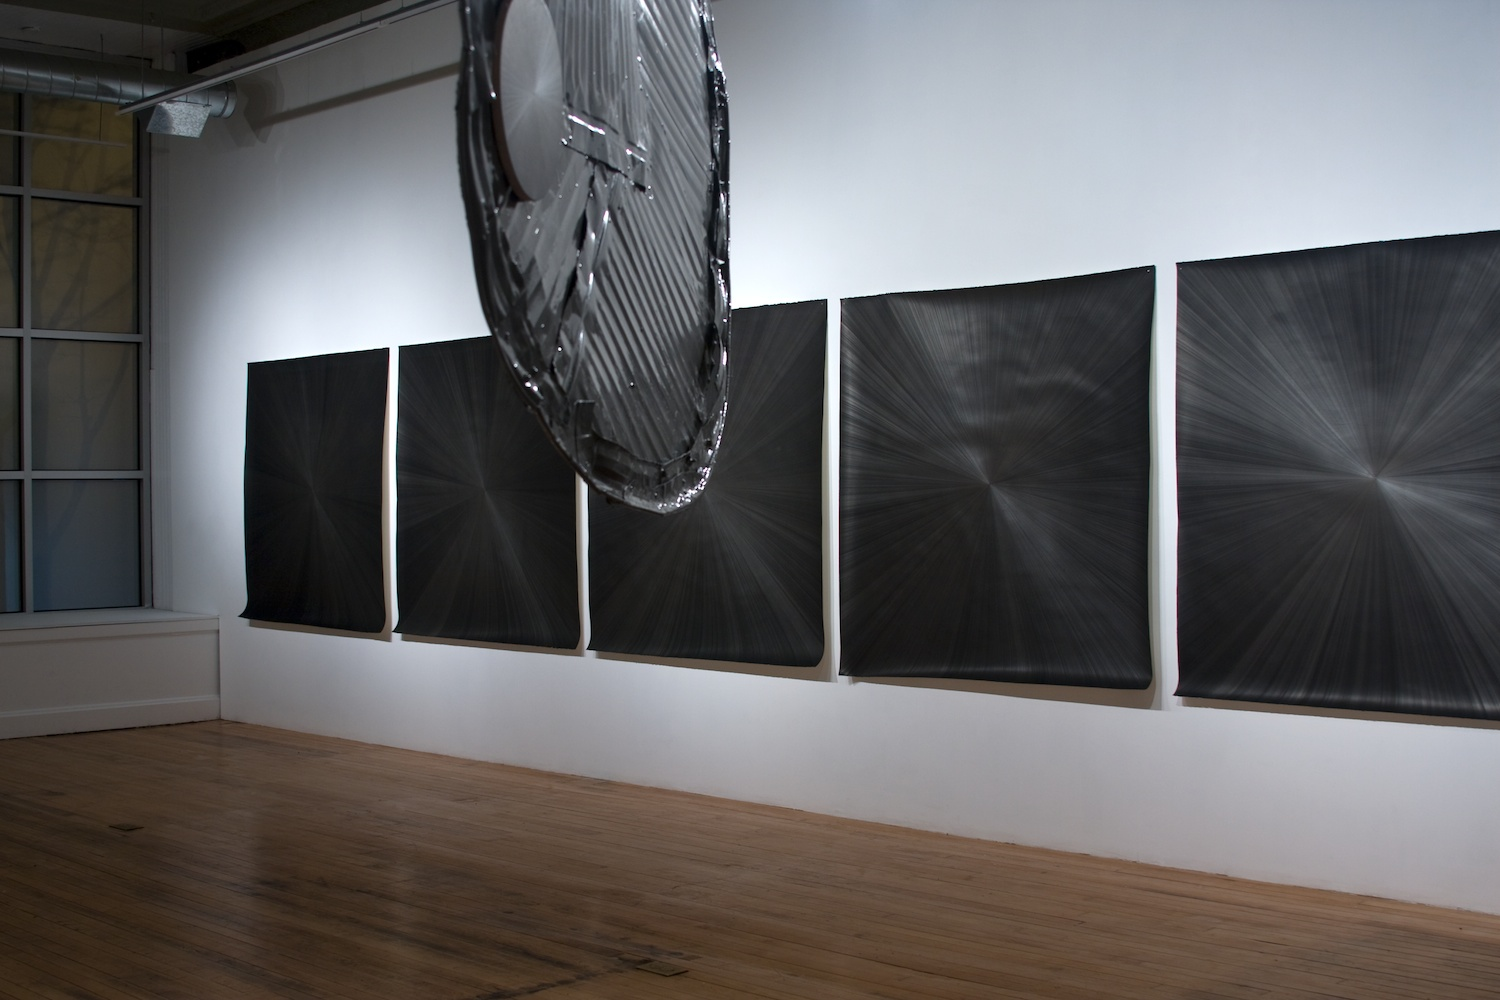 Michelle Grabner Silverpoints Shane Campbell Gallery, Chicago 2009 nstallation View